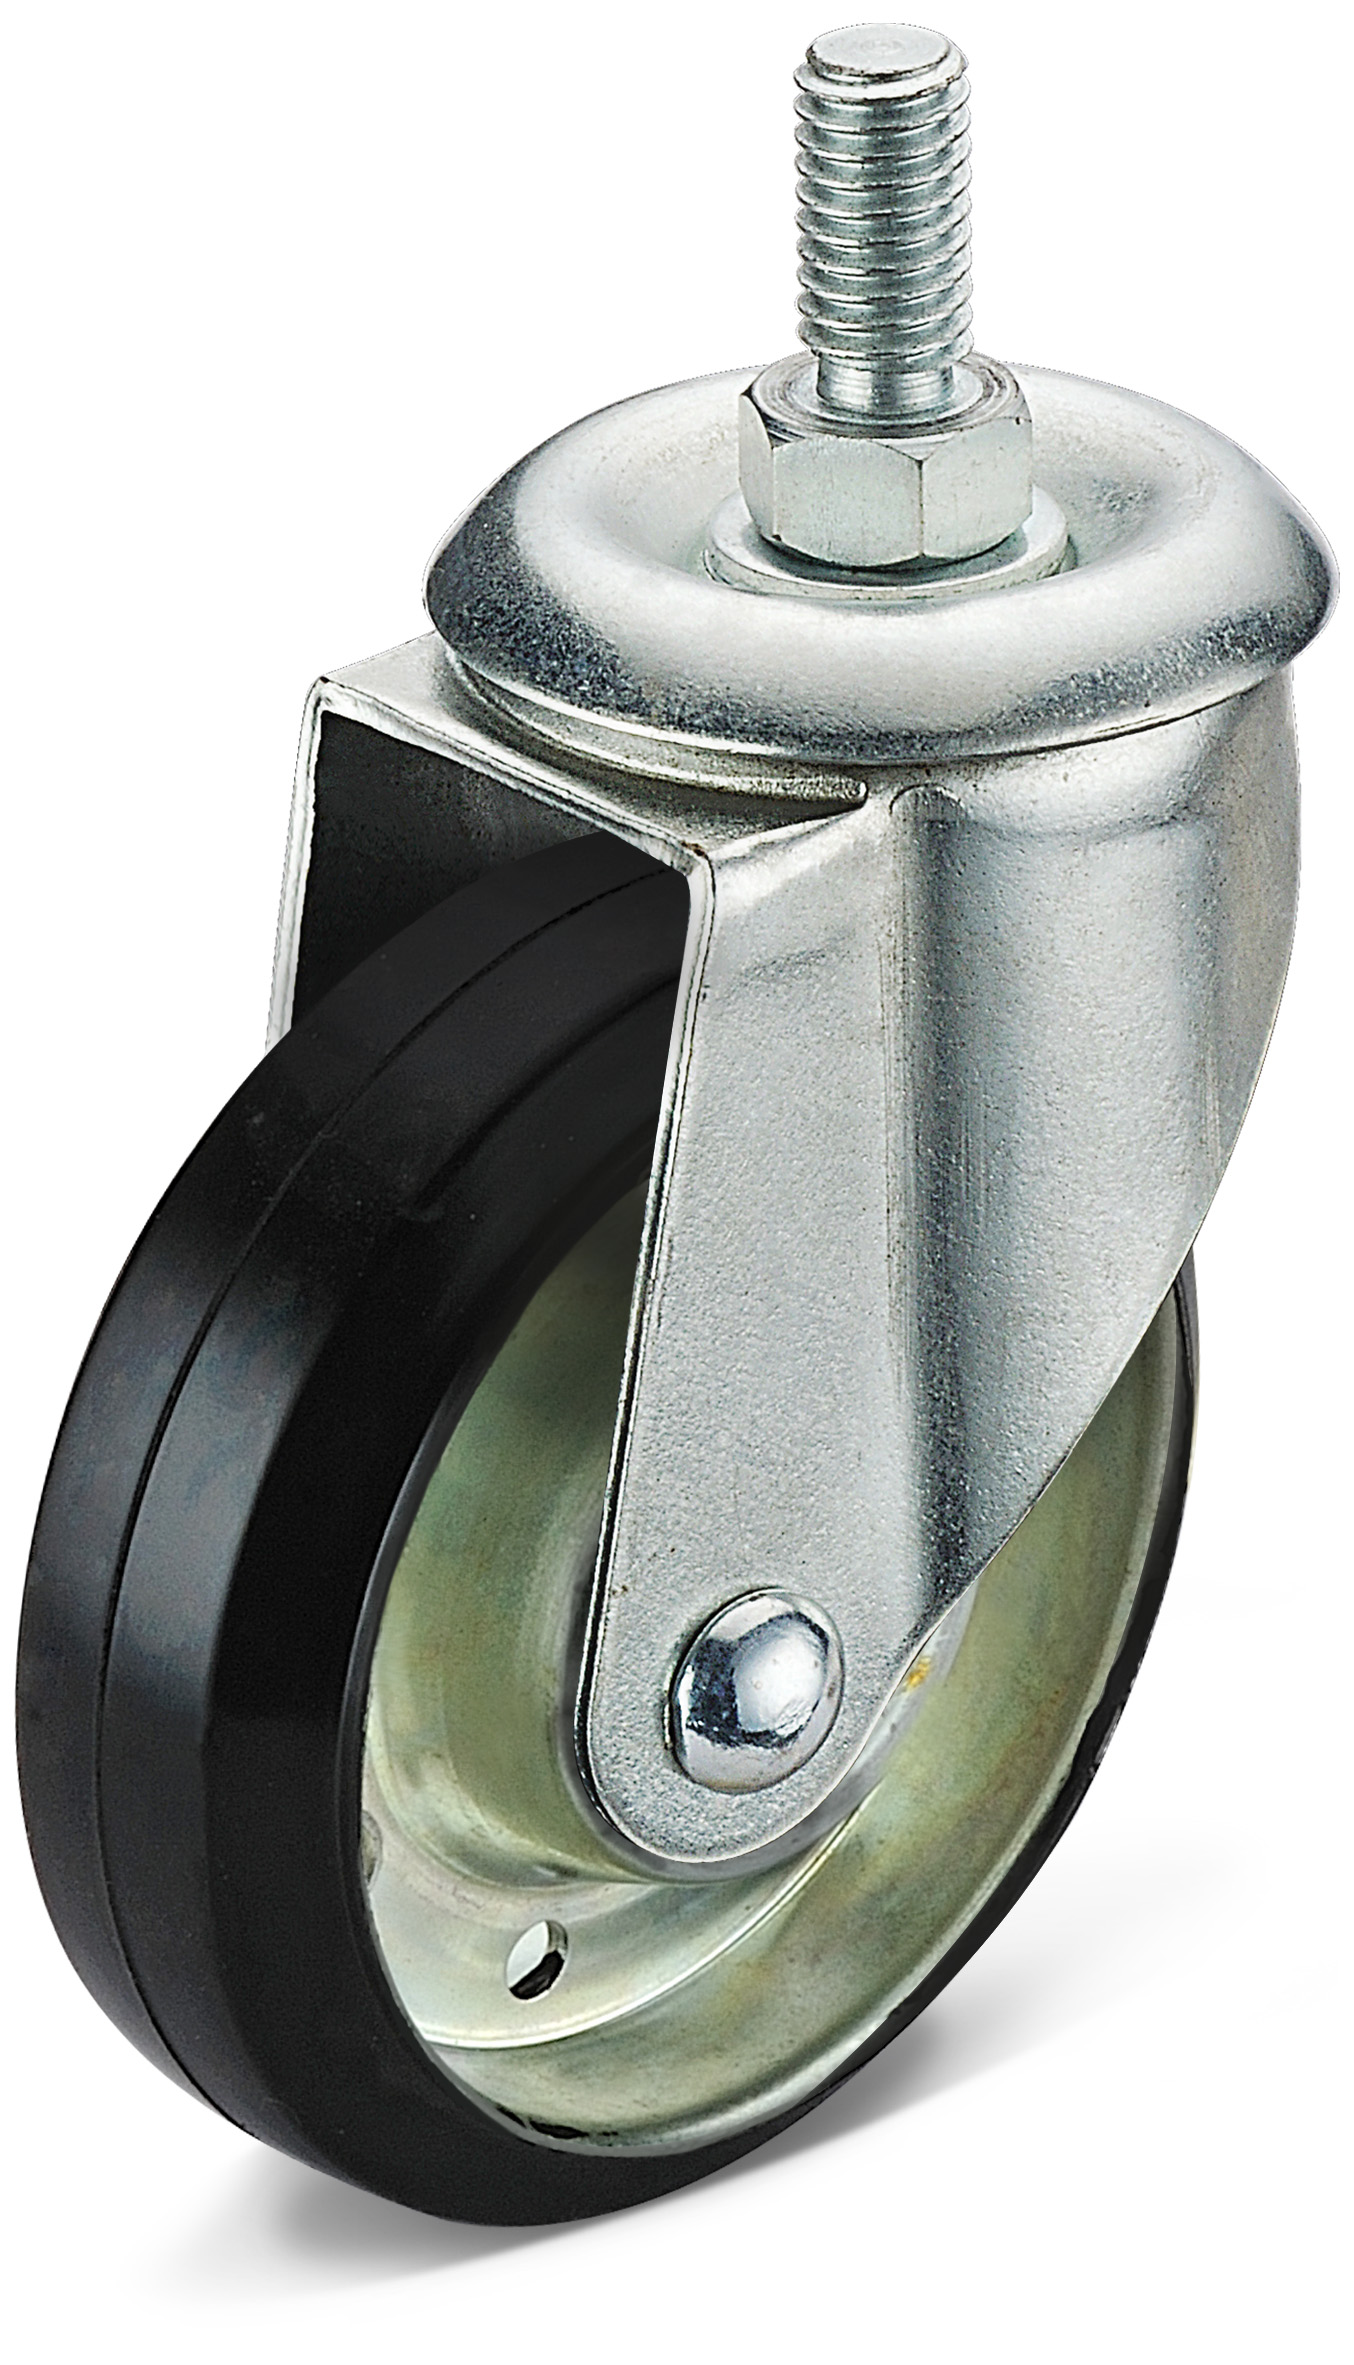 Black Rubber Screw Caster